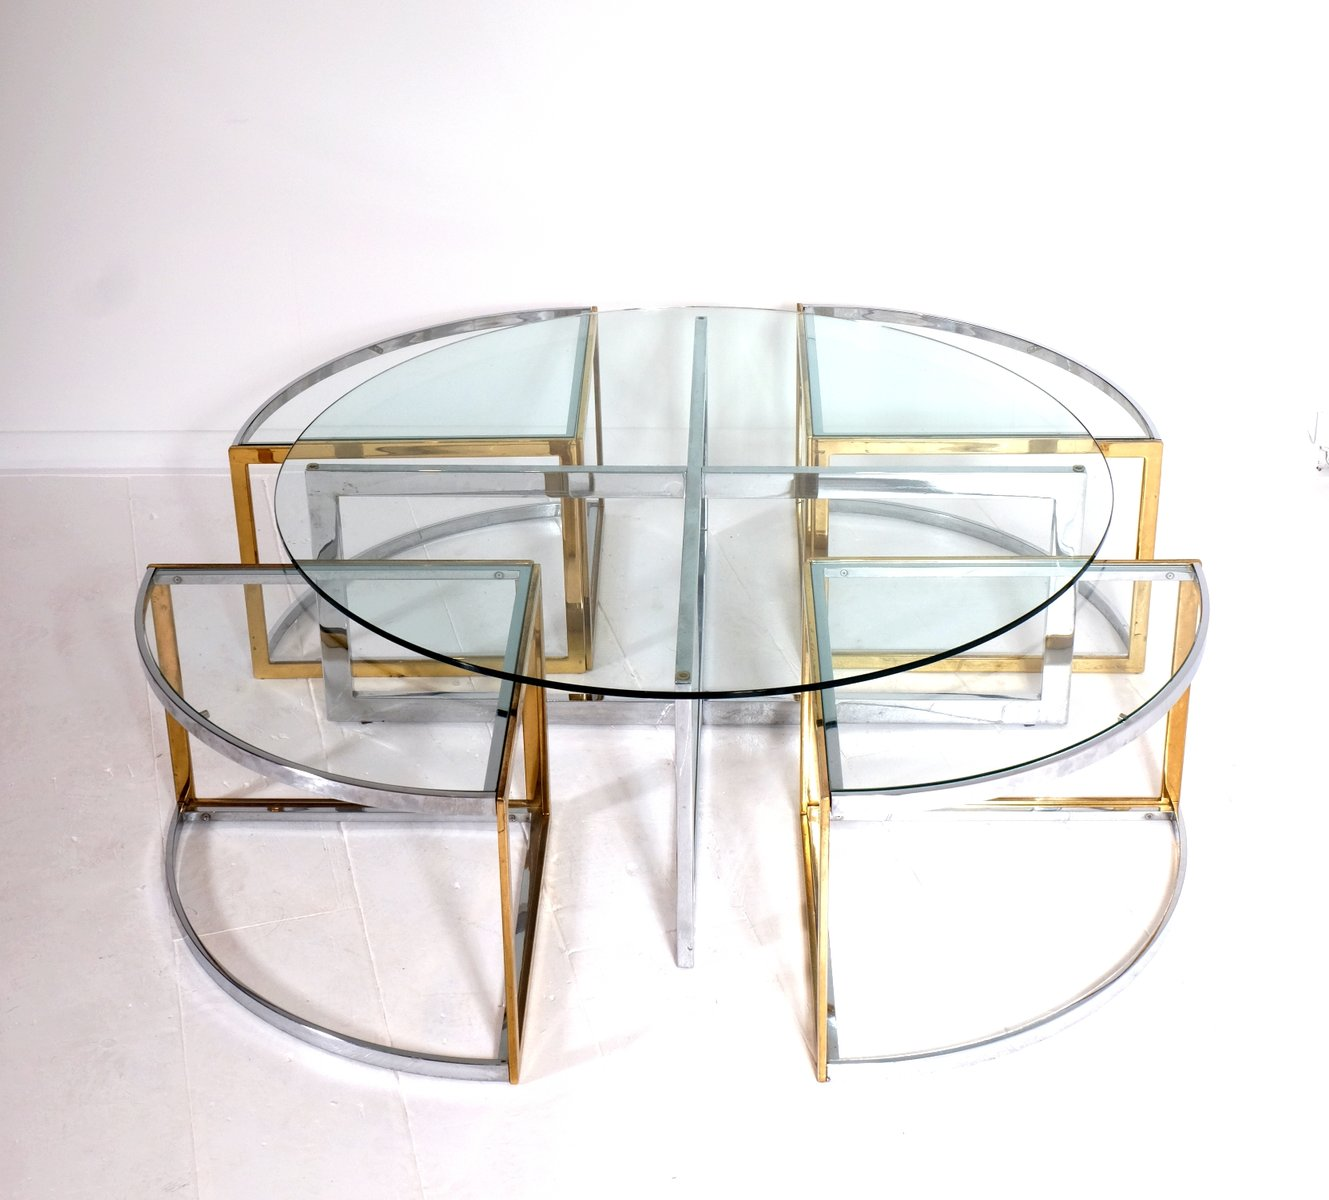 Vintage Round Coffee Table With Nesting Tables By Maison